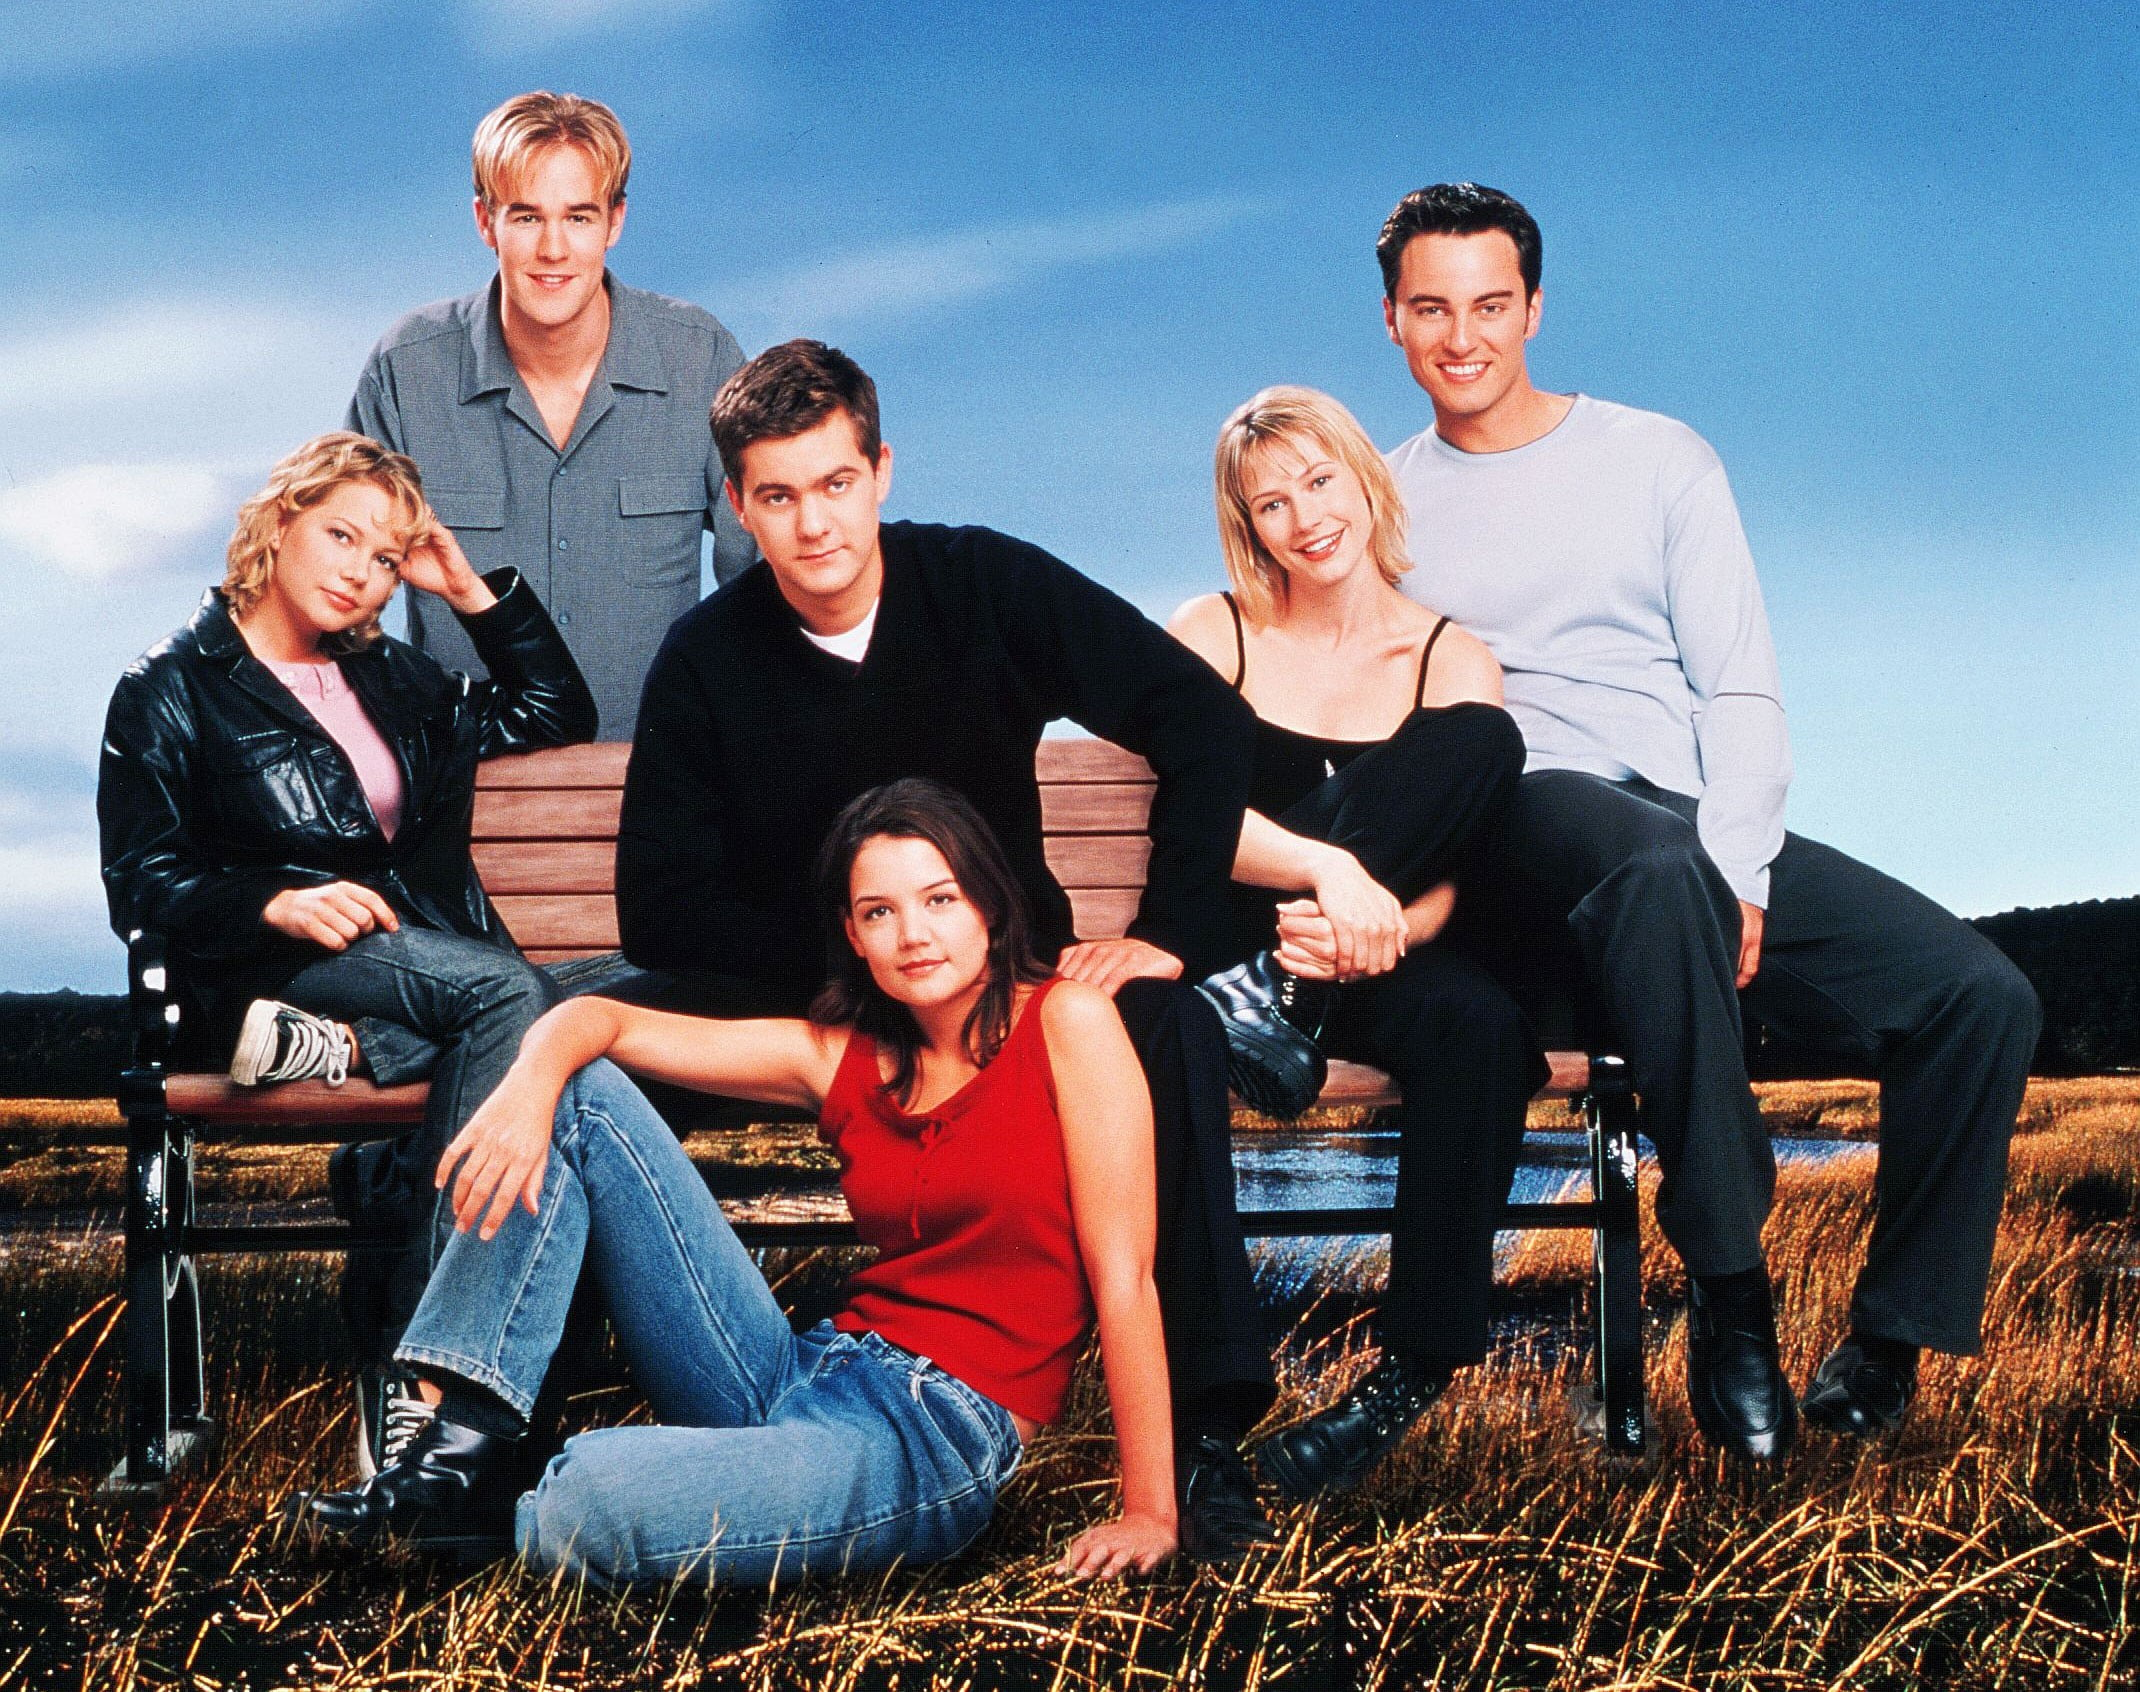 Michelle Williams James Van Der Beek Joshua Jackson Meredith Monroe Kerr Smith and Katie Holmes in Dawsons Creek